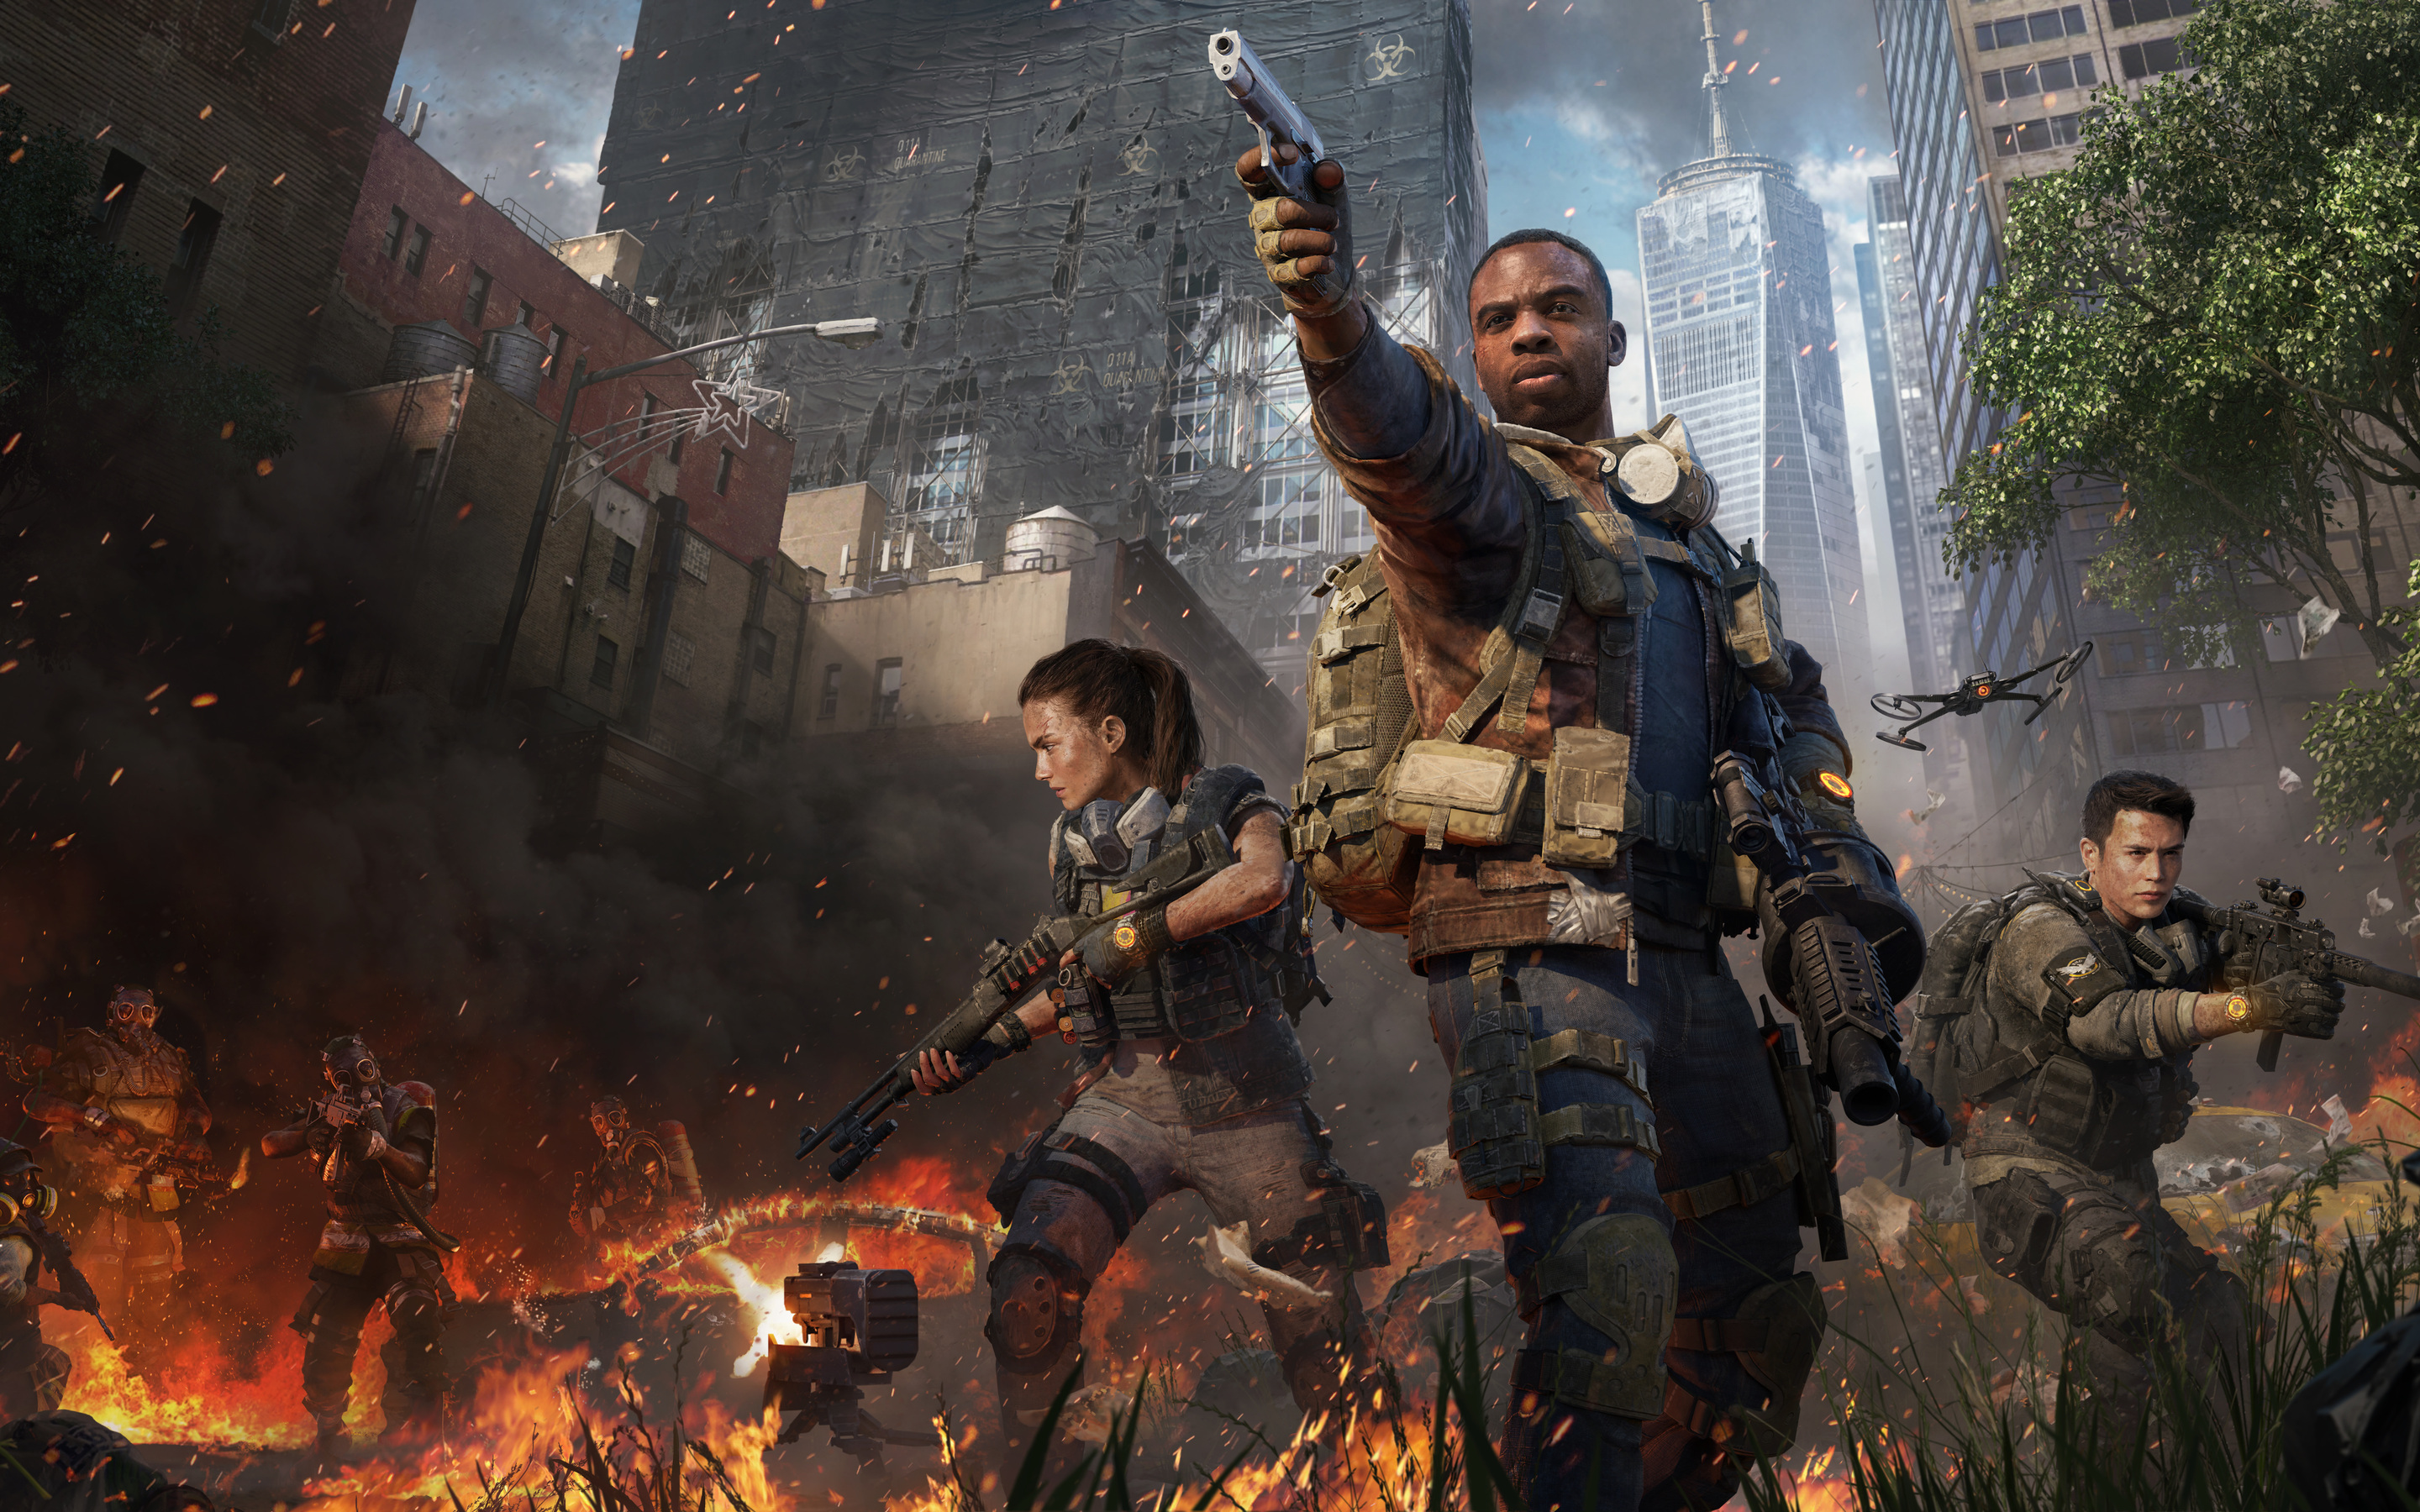 tom-clanycs-the-division-2-warlords-of-new-york-8k-c4.jpg